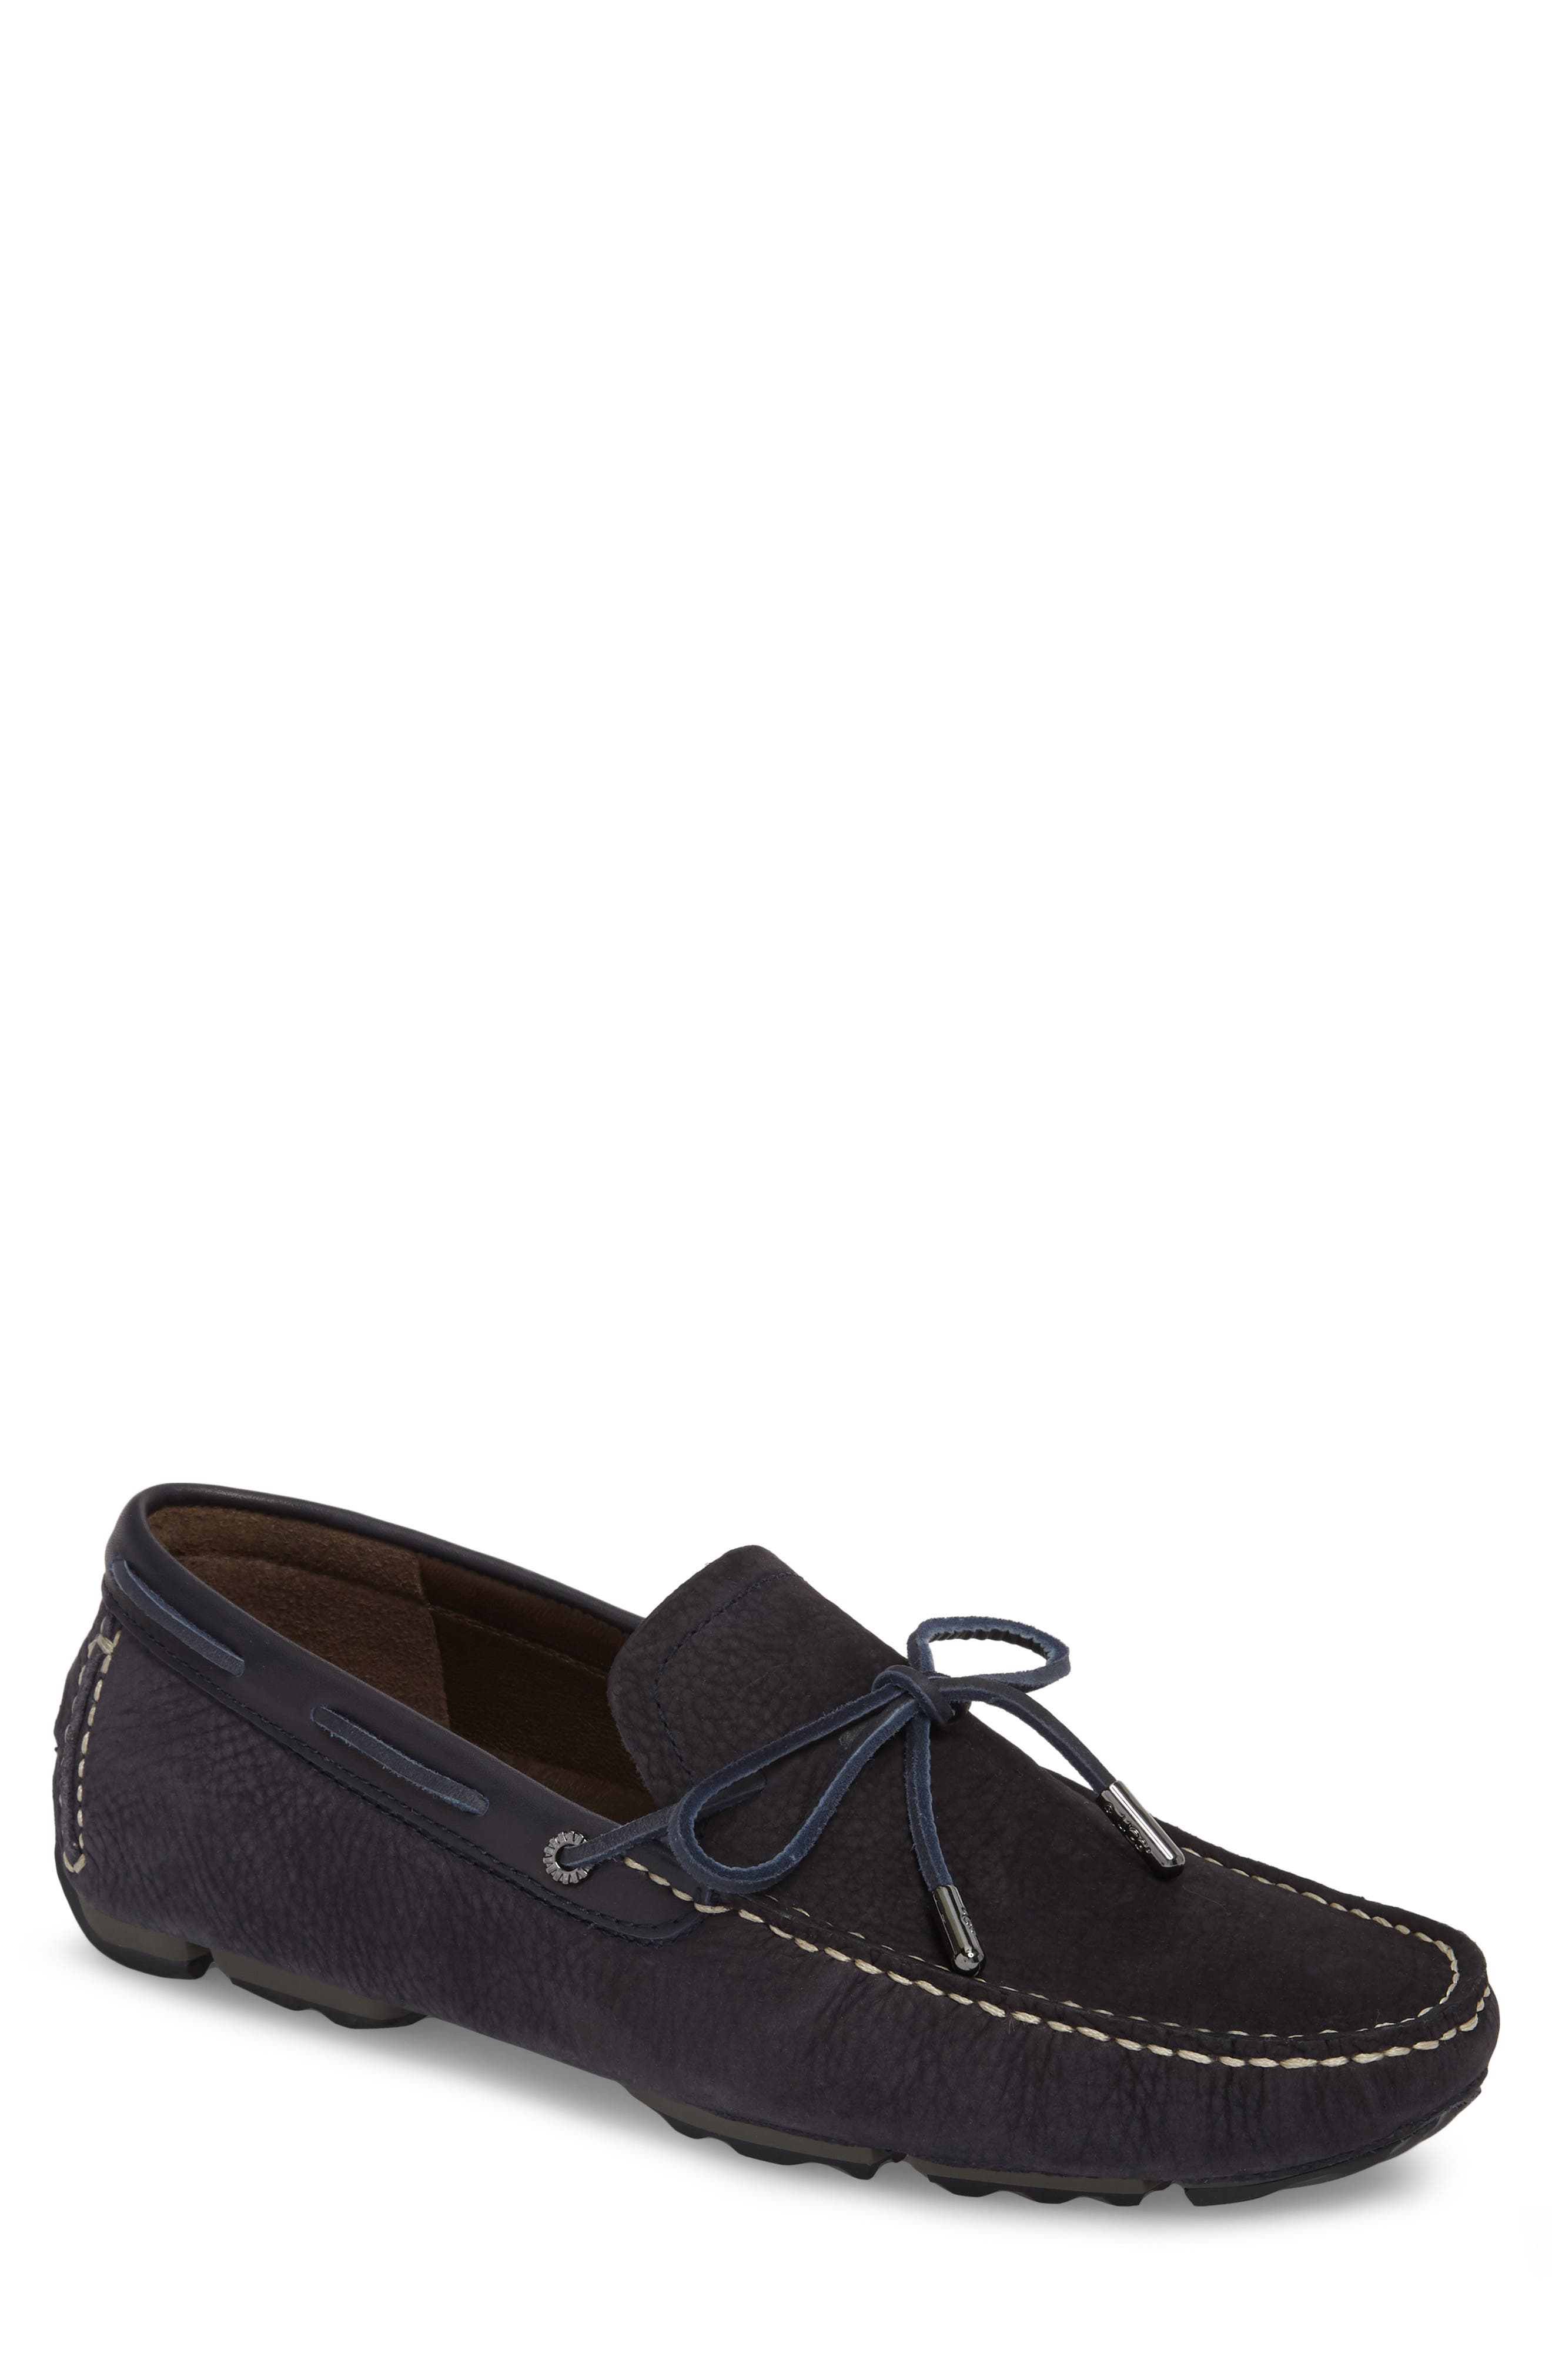 Bel Air Driving Moccasin,                         Main,                         color, Navy Leather